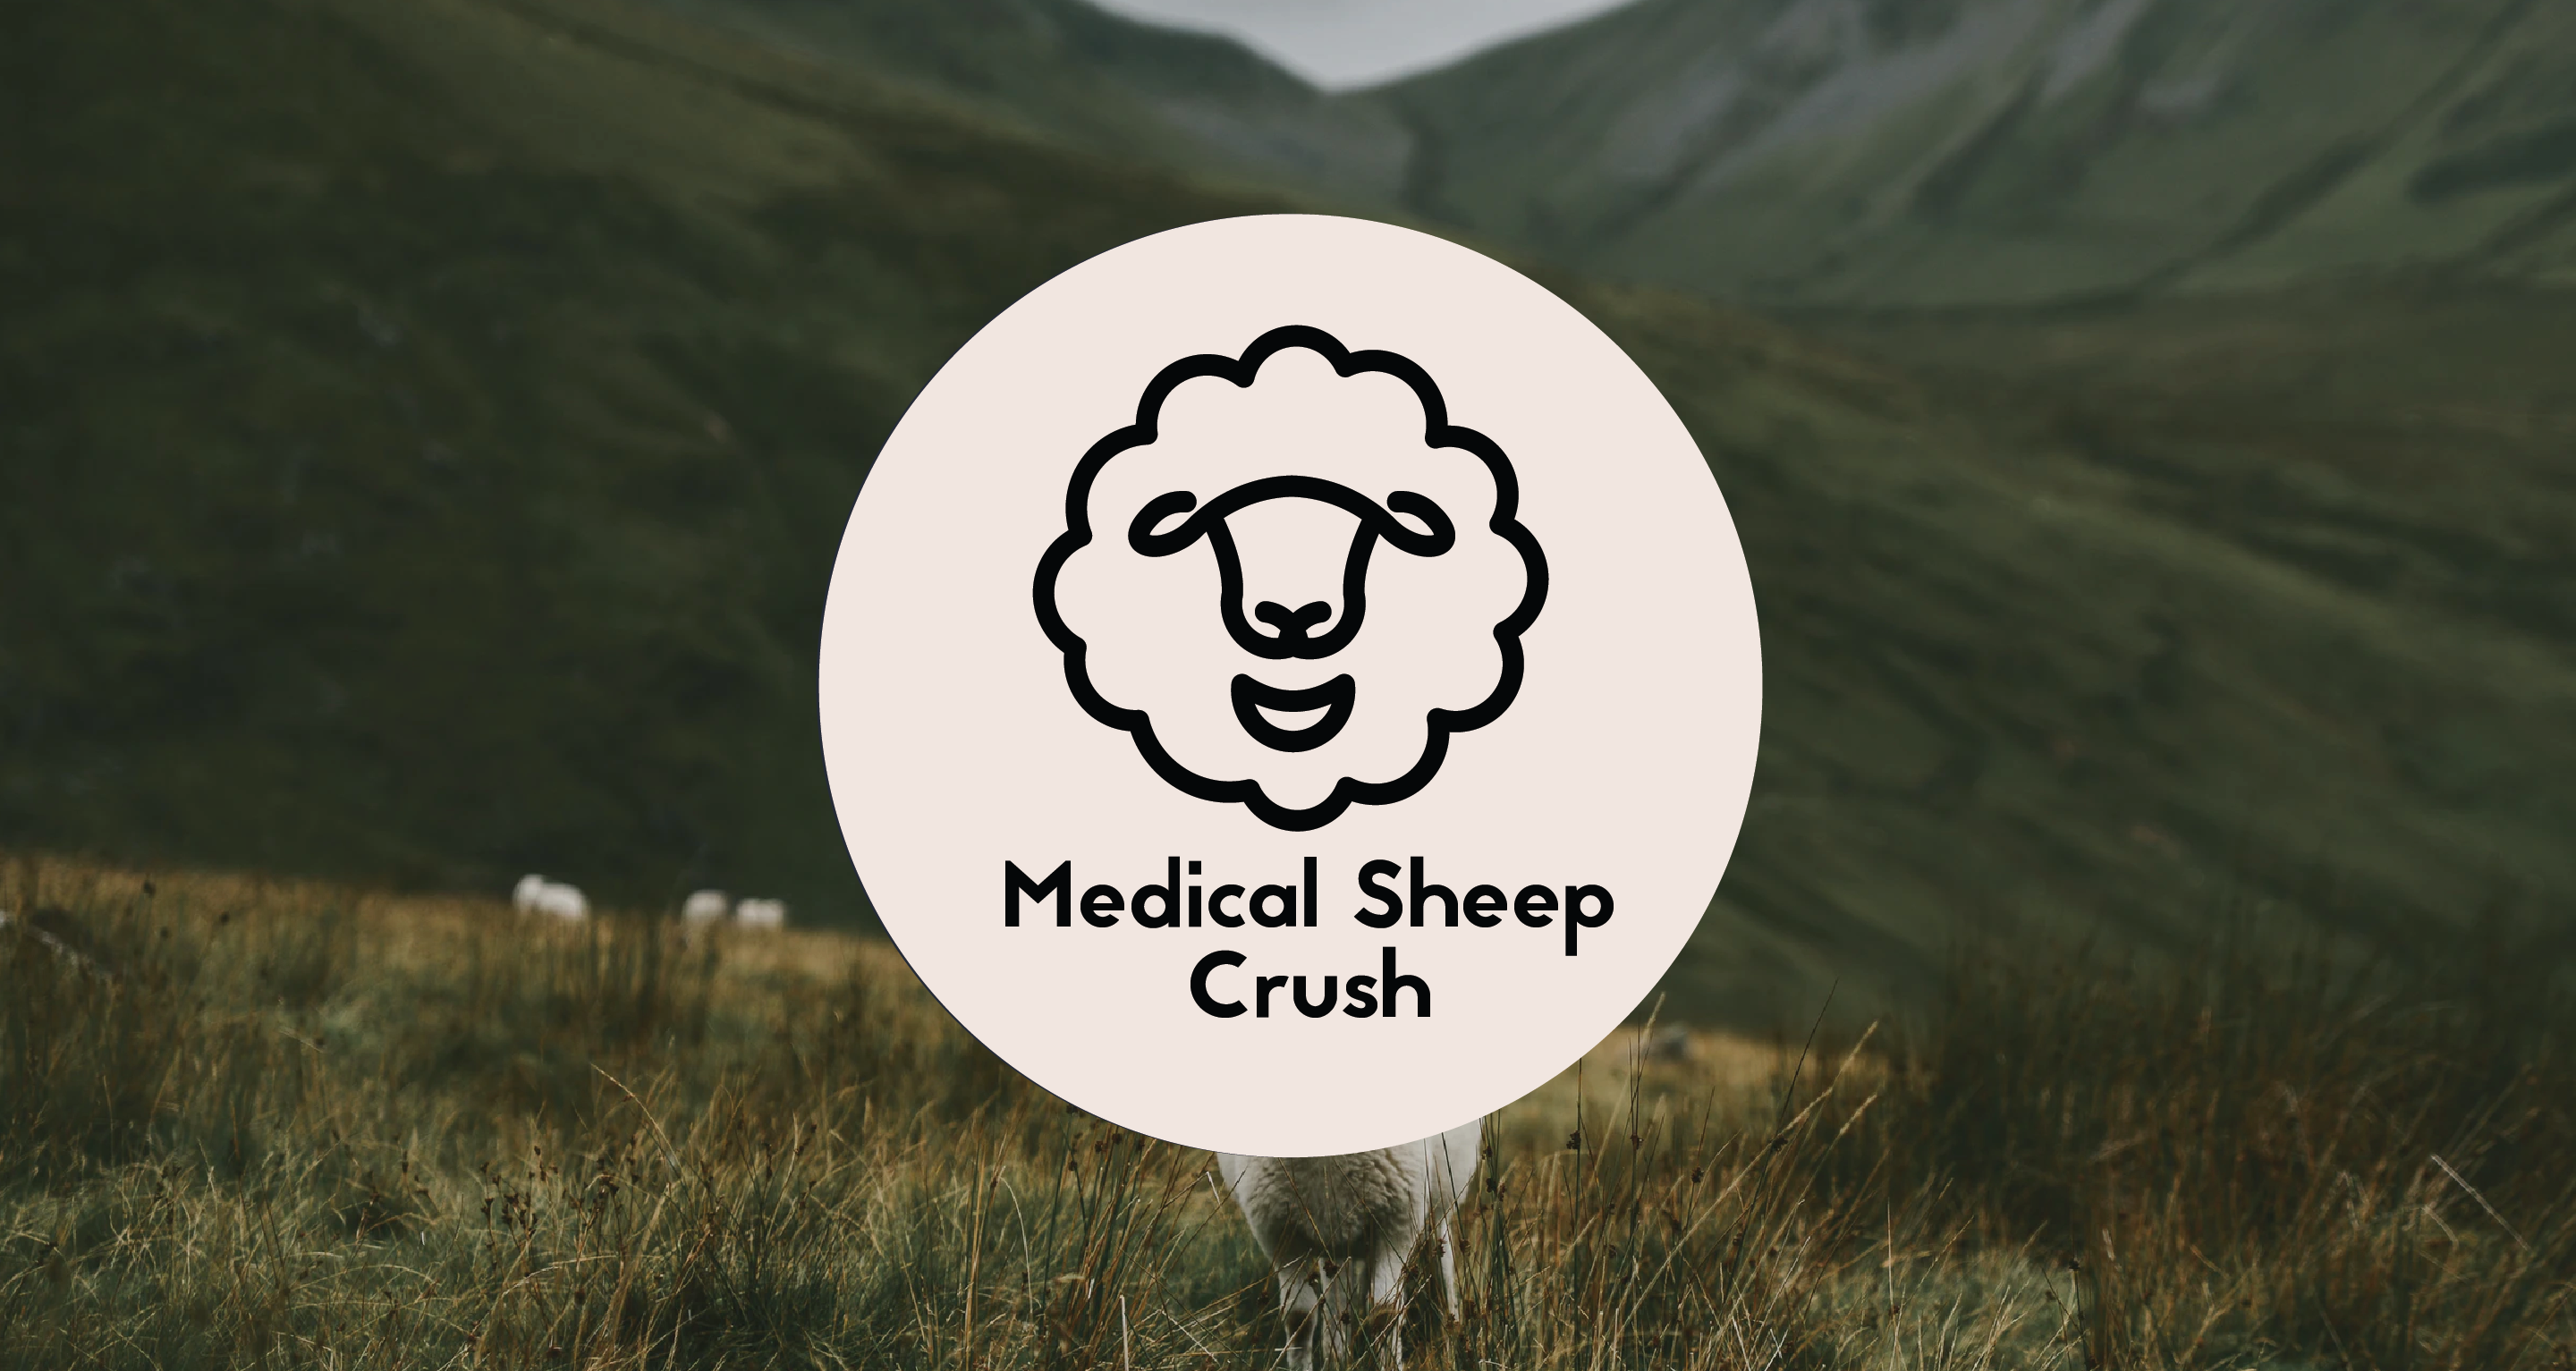 Medical Sheep Crush Image